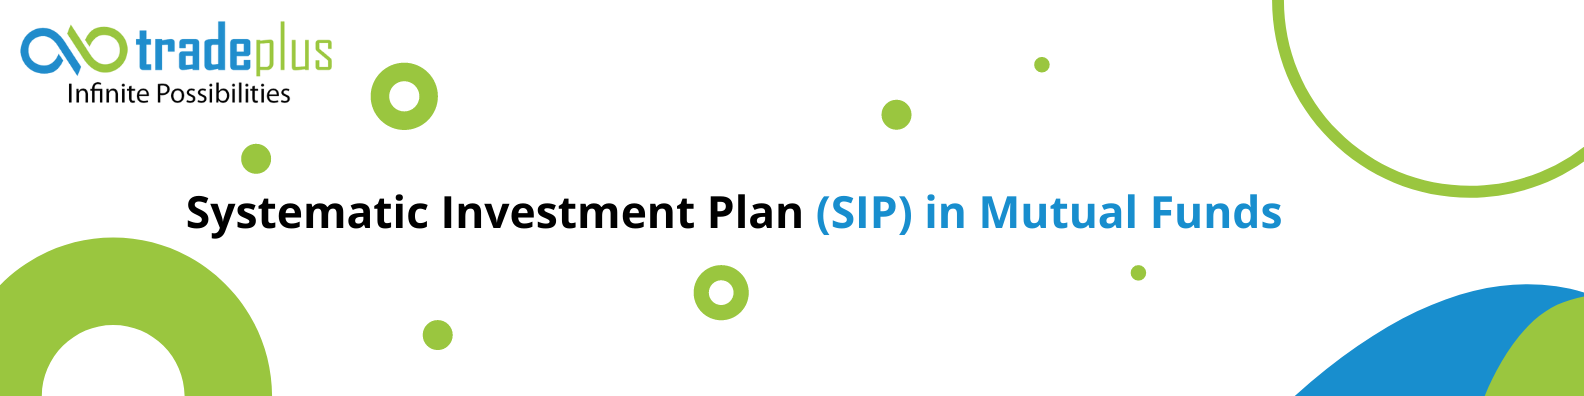 Systematic investment plan in mutual funds 1 What is Systematic Investment Plan (SIP) in Mutual Funds